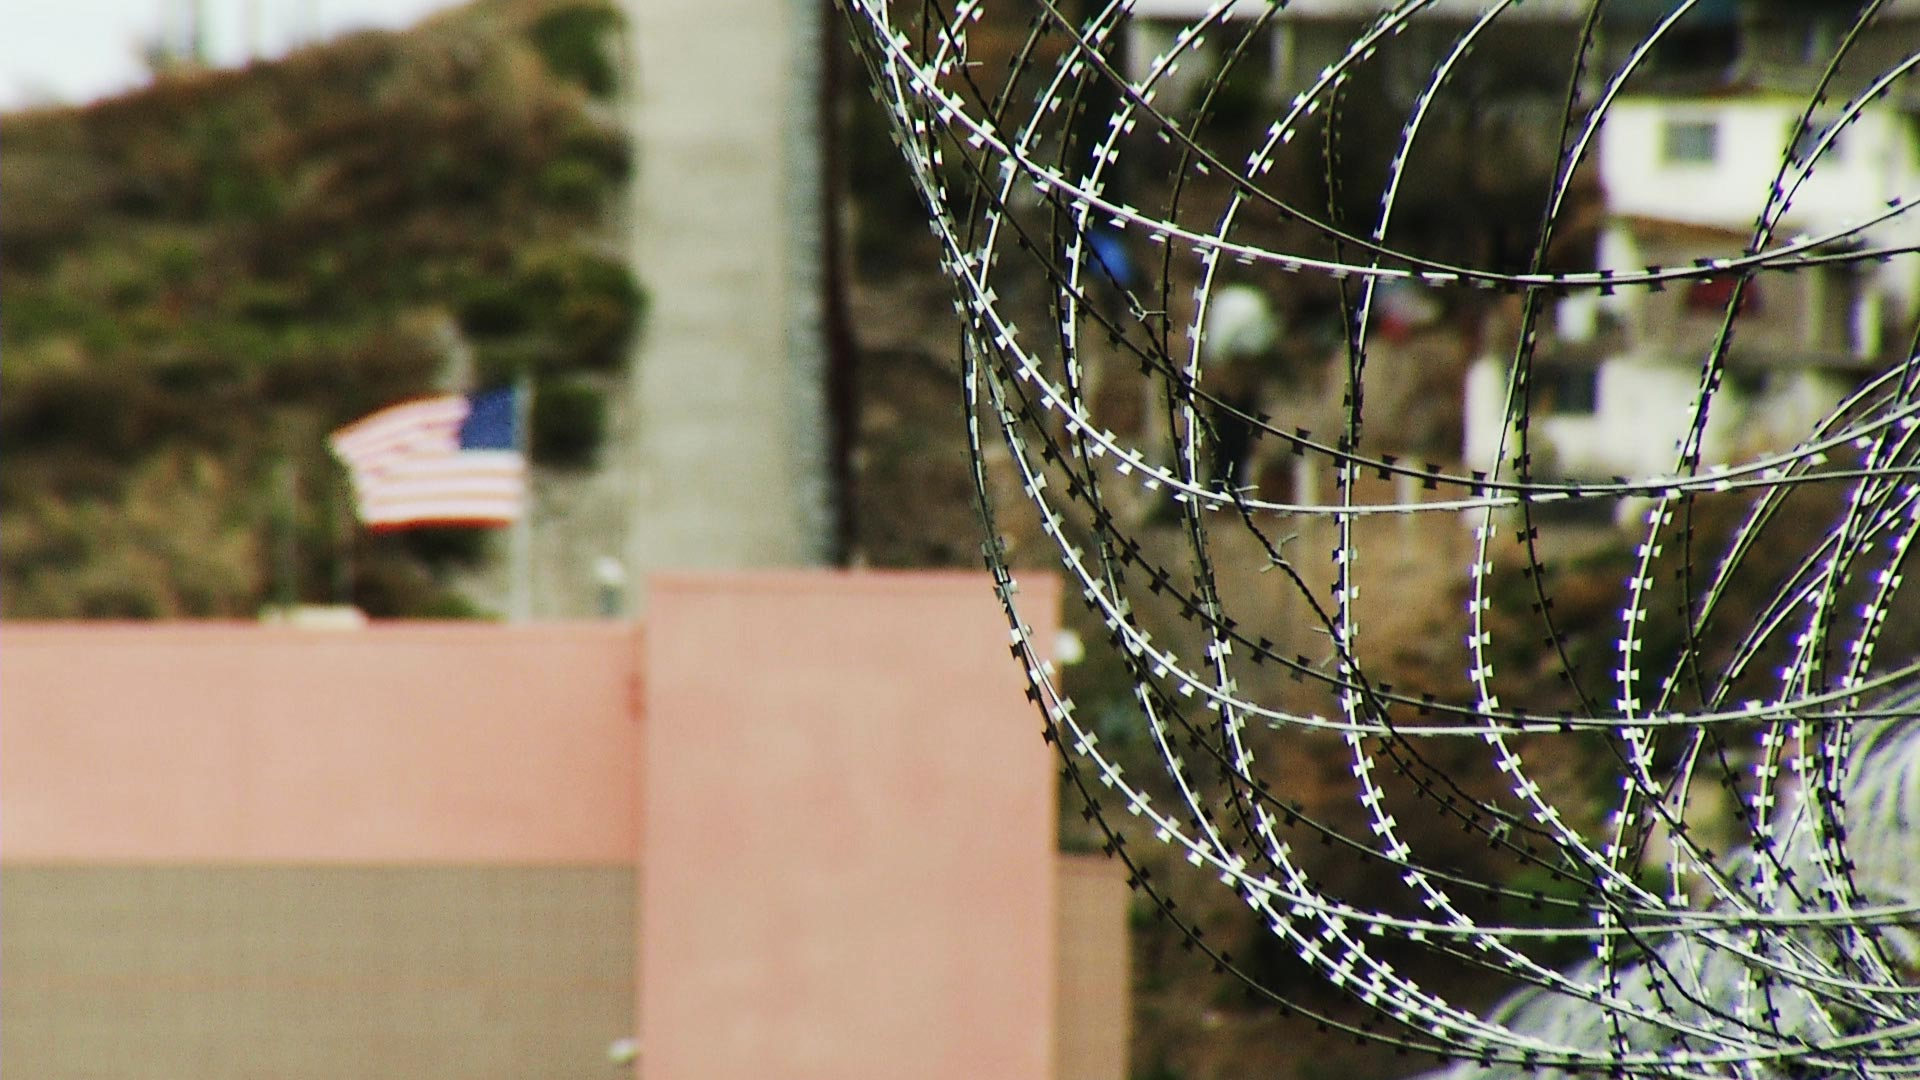 Concertina wire lines bollard fencing at the international border in Nogales, Arizona.